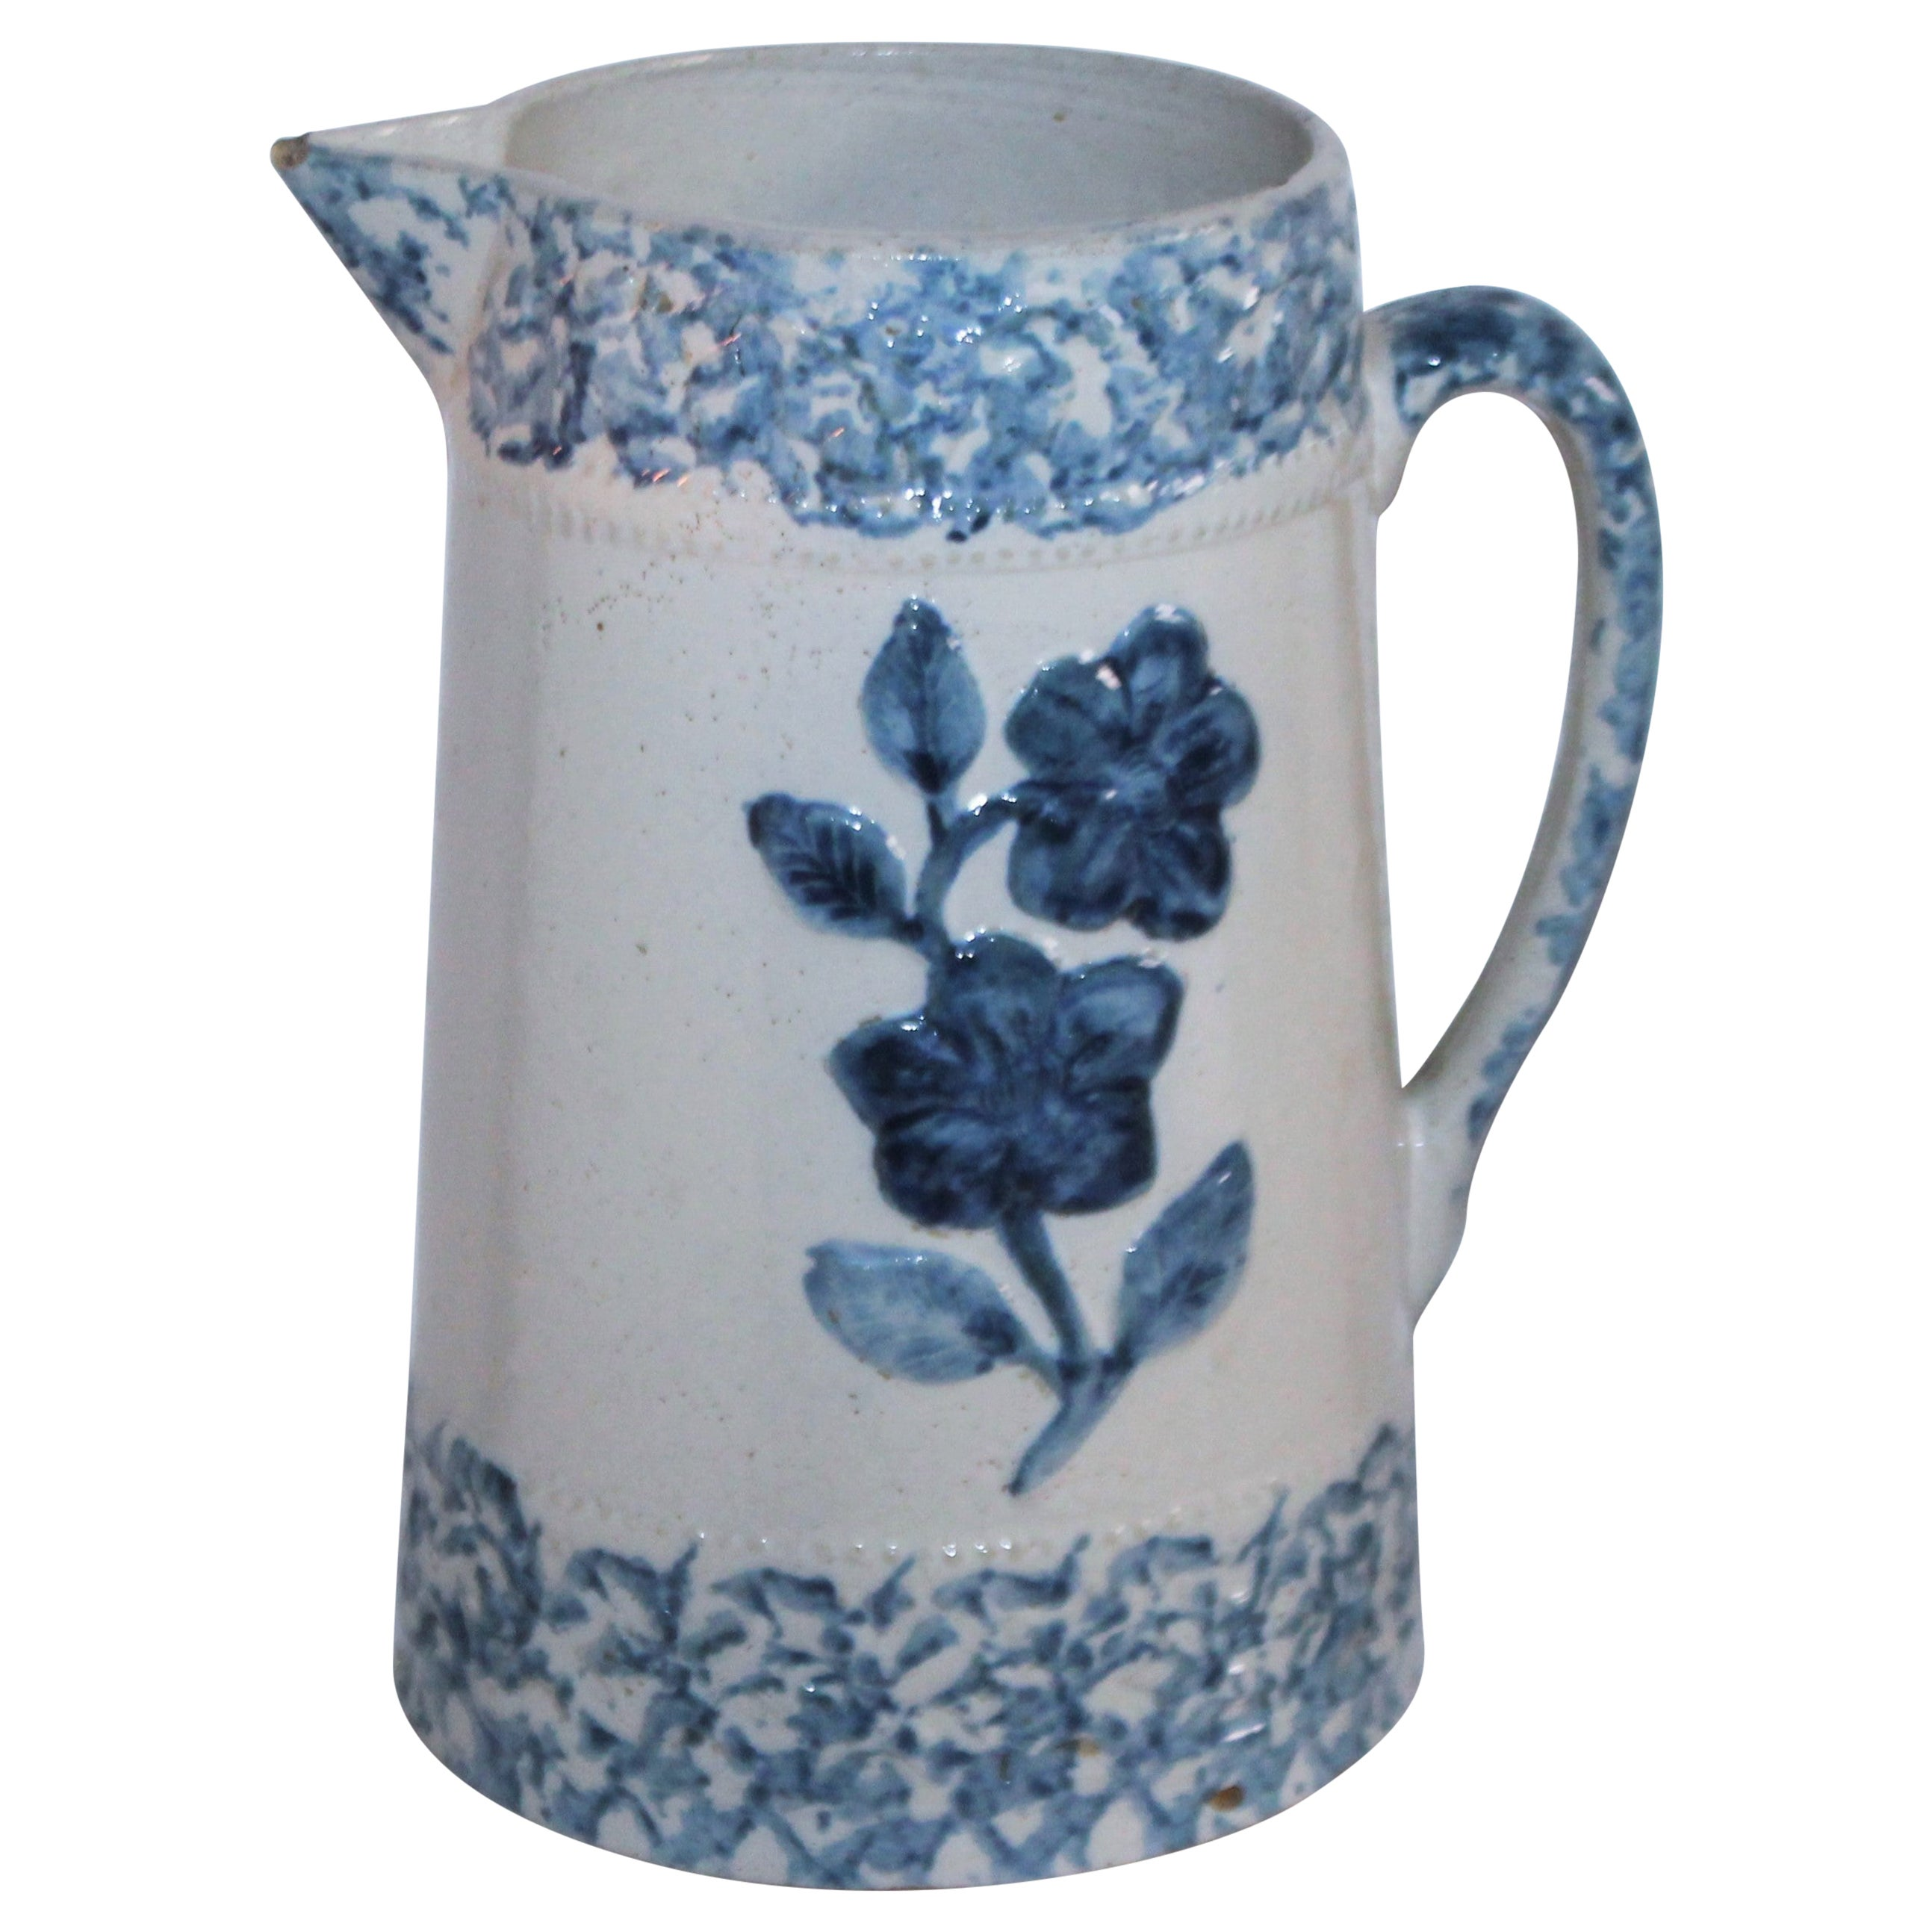 19th Century Floral Sponge Ware Pitcher